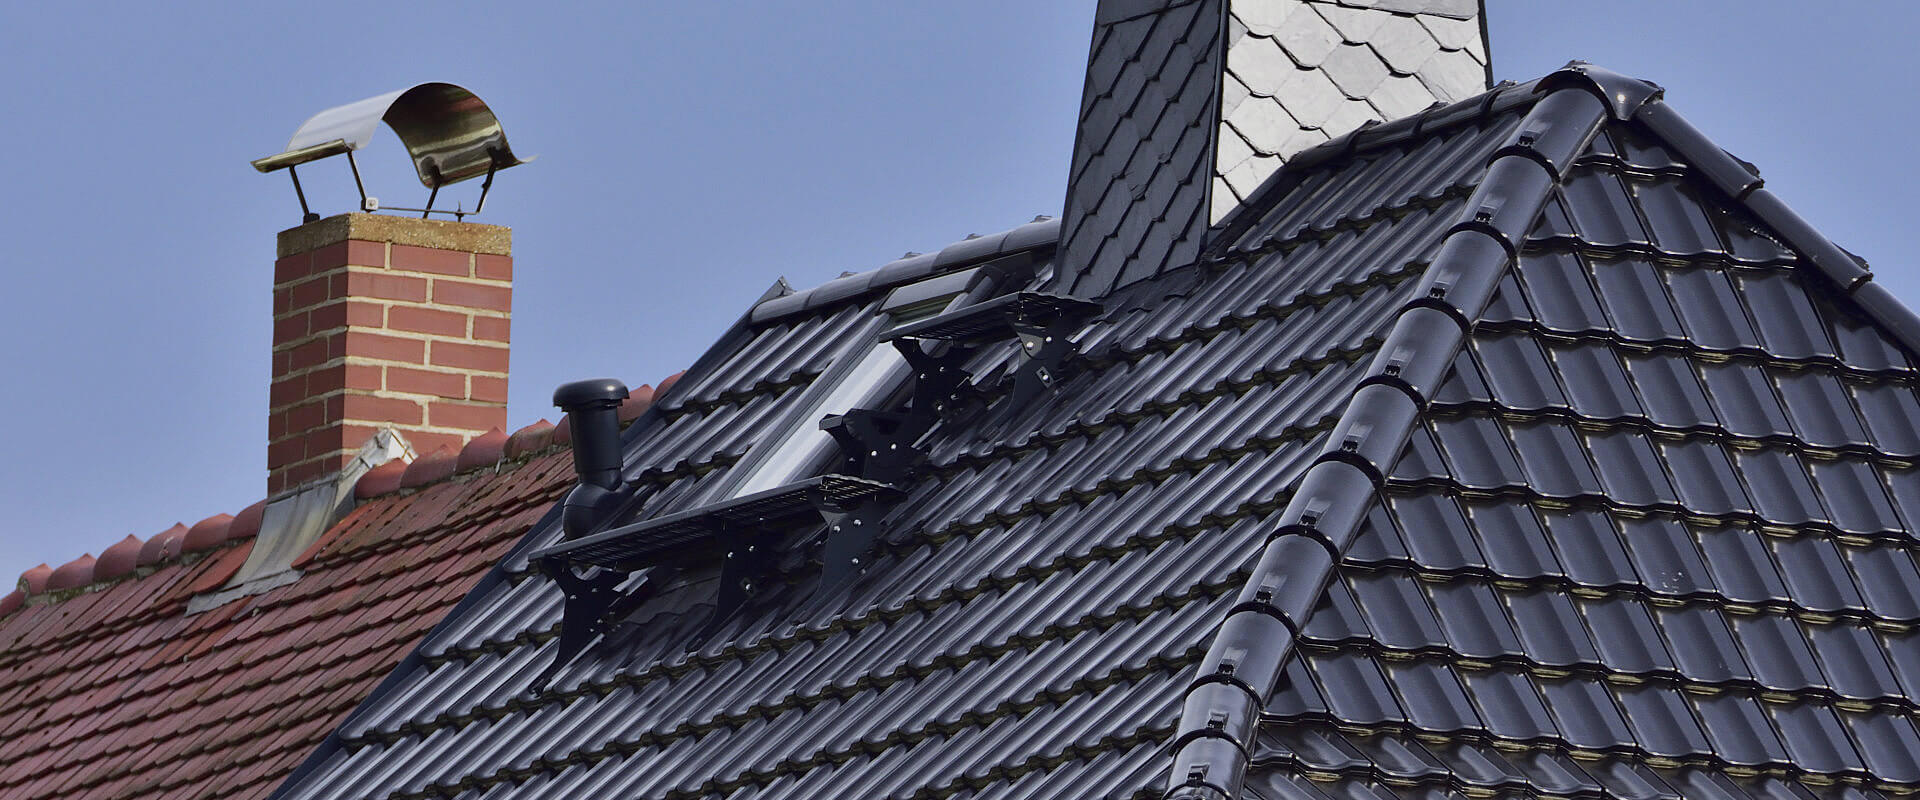 Commercial Roofing Roofing Services